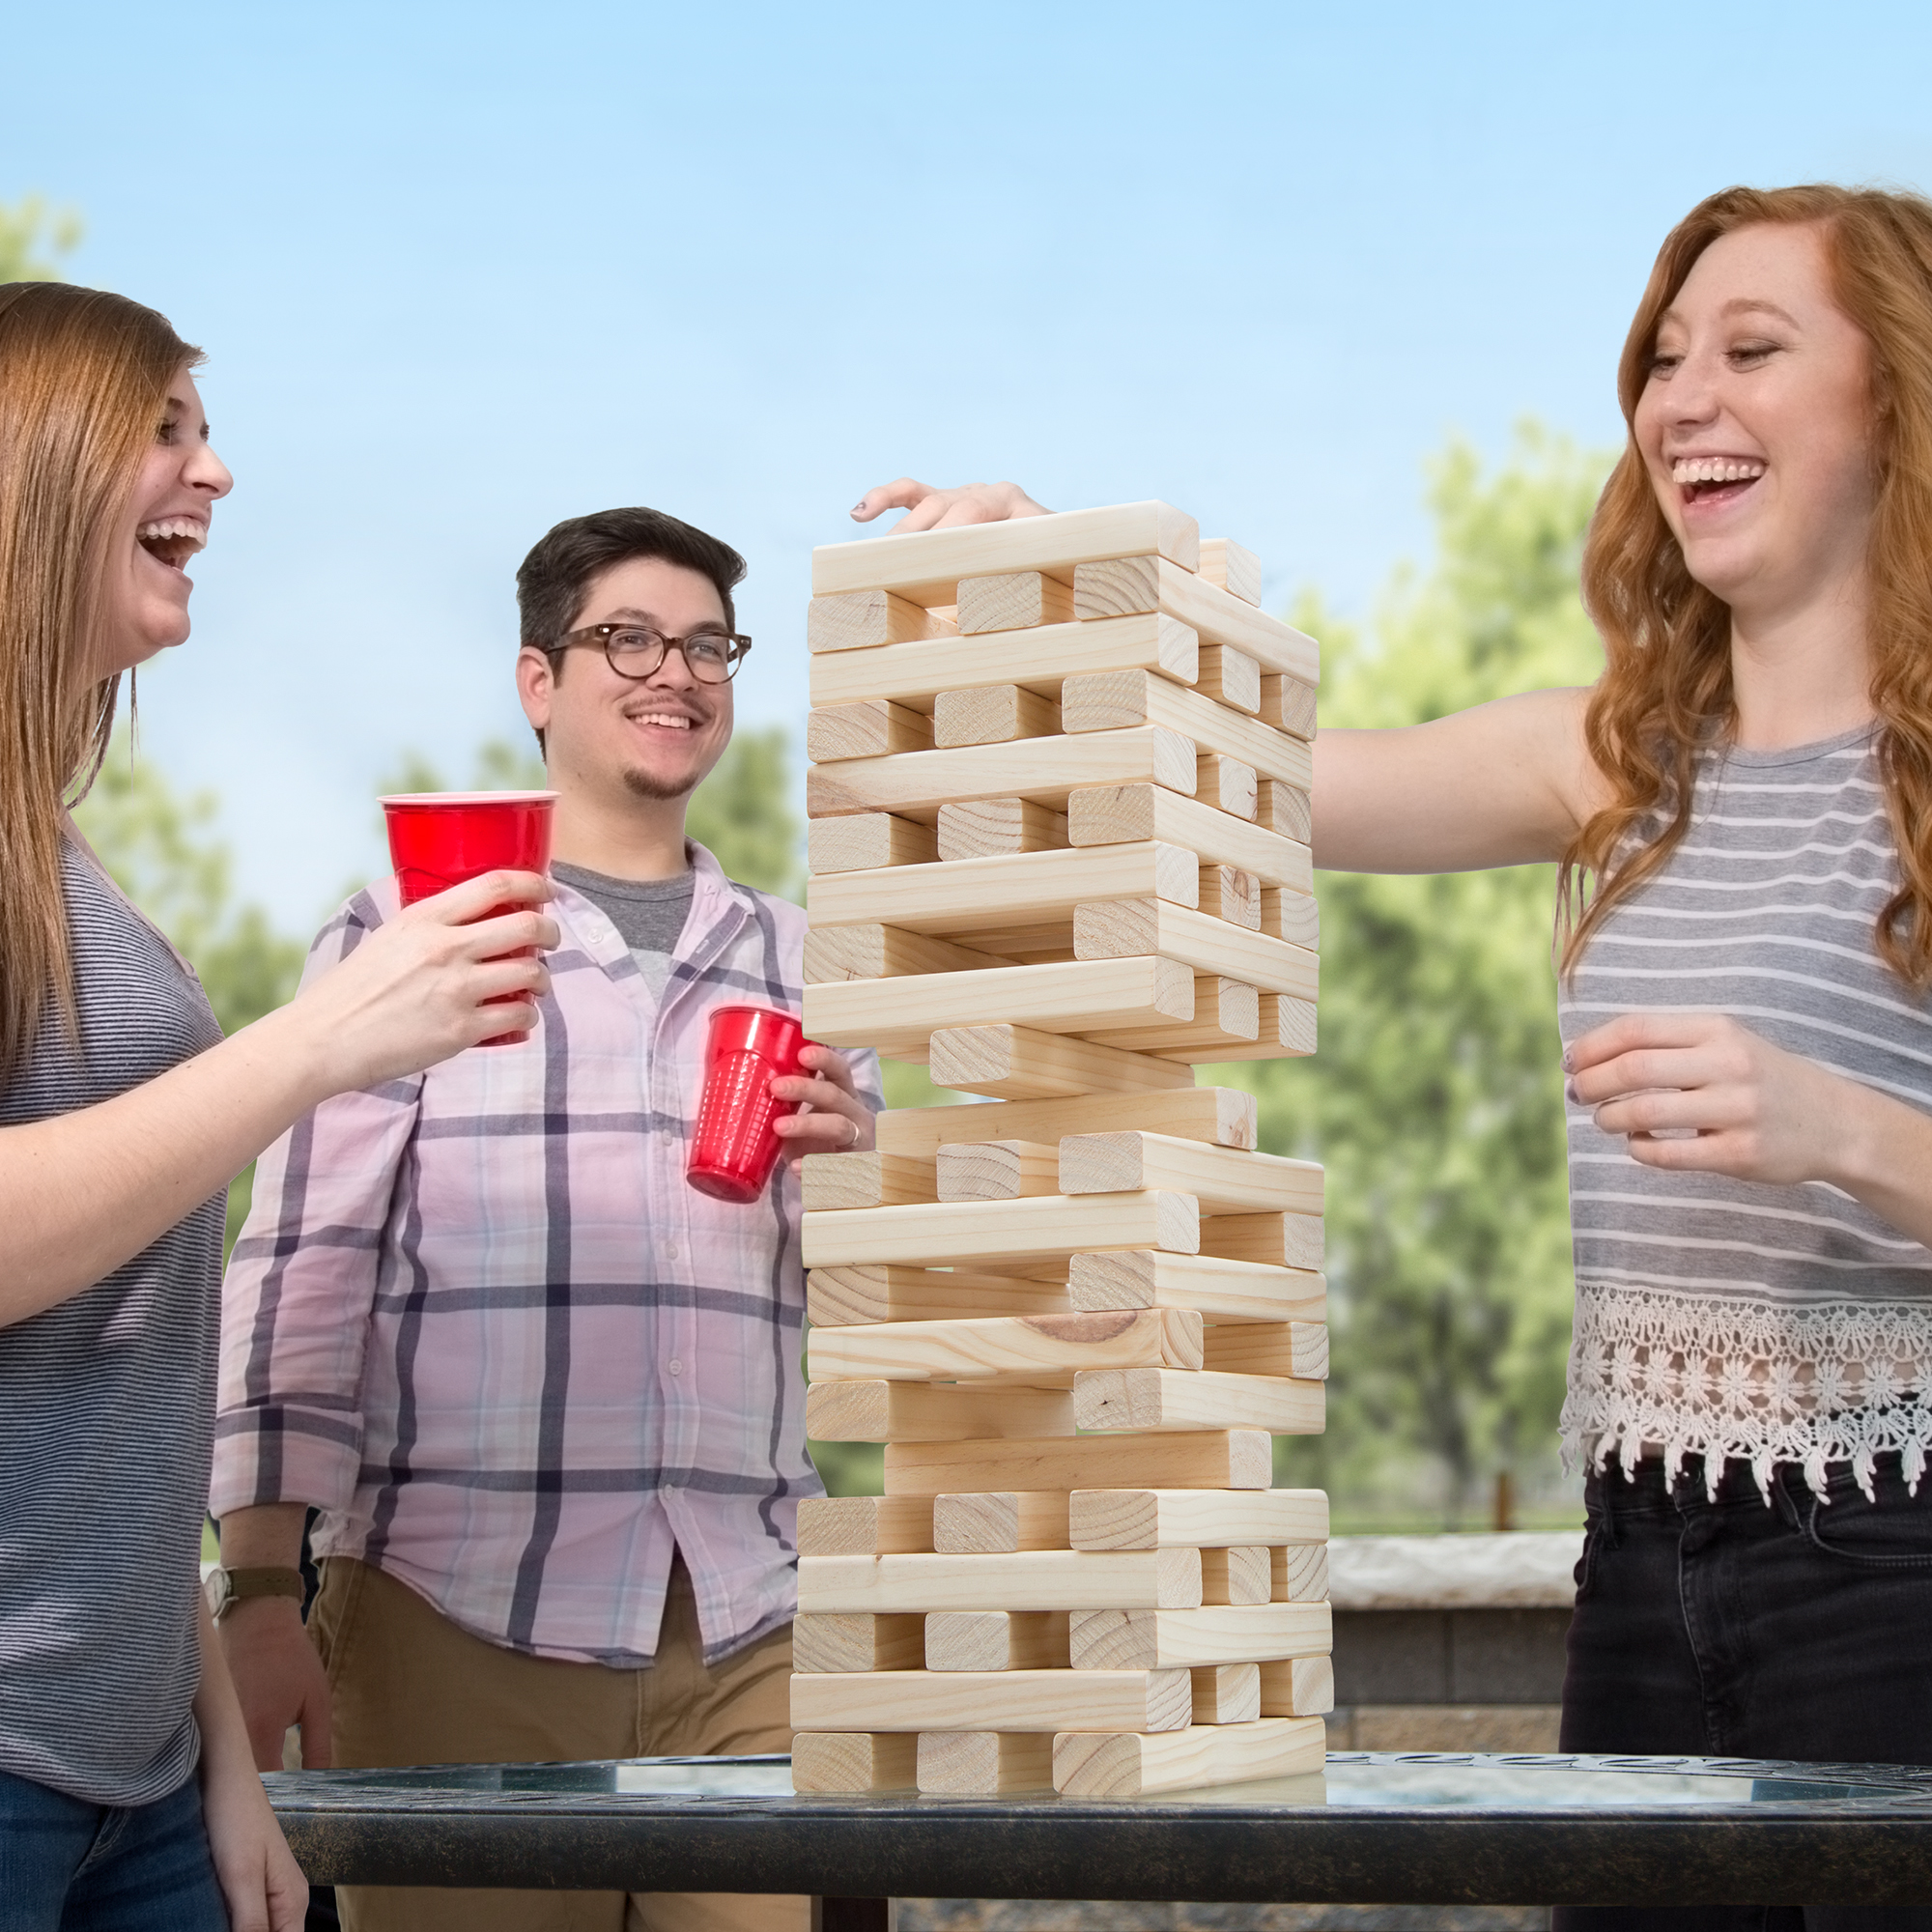 Giant Wooden Blocks Tower Stacking Game by Hey! Play!